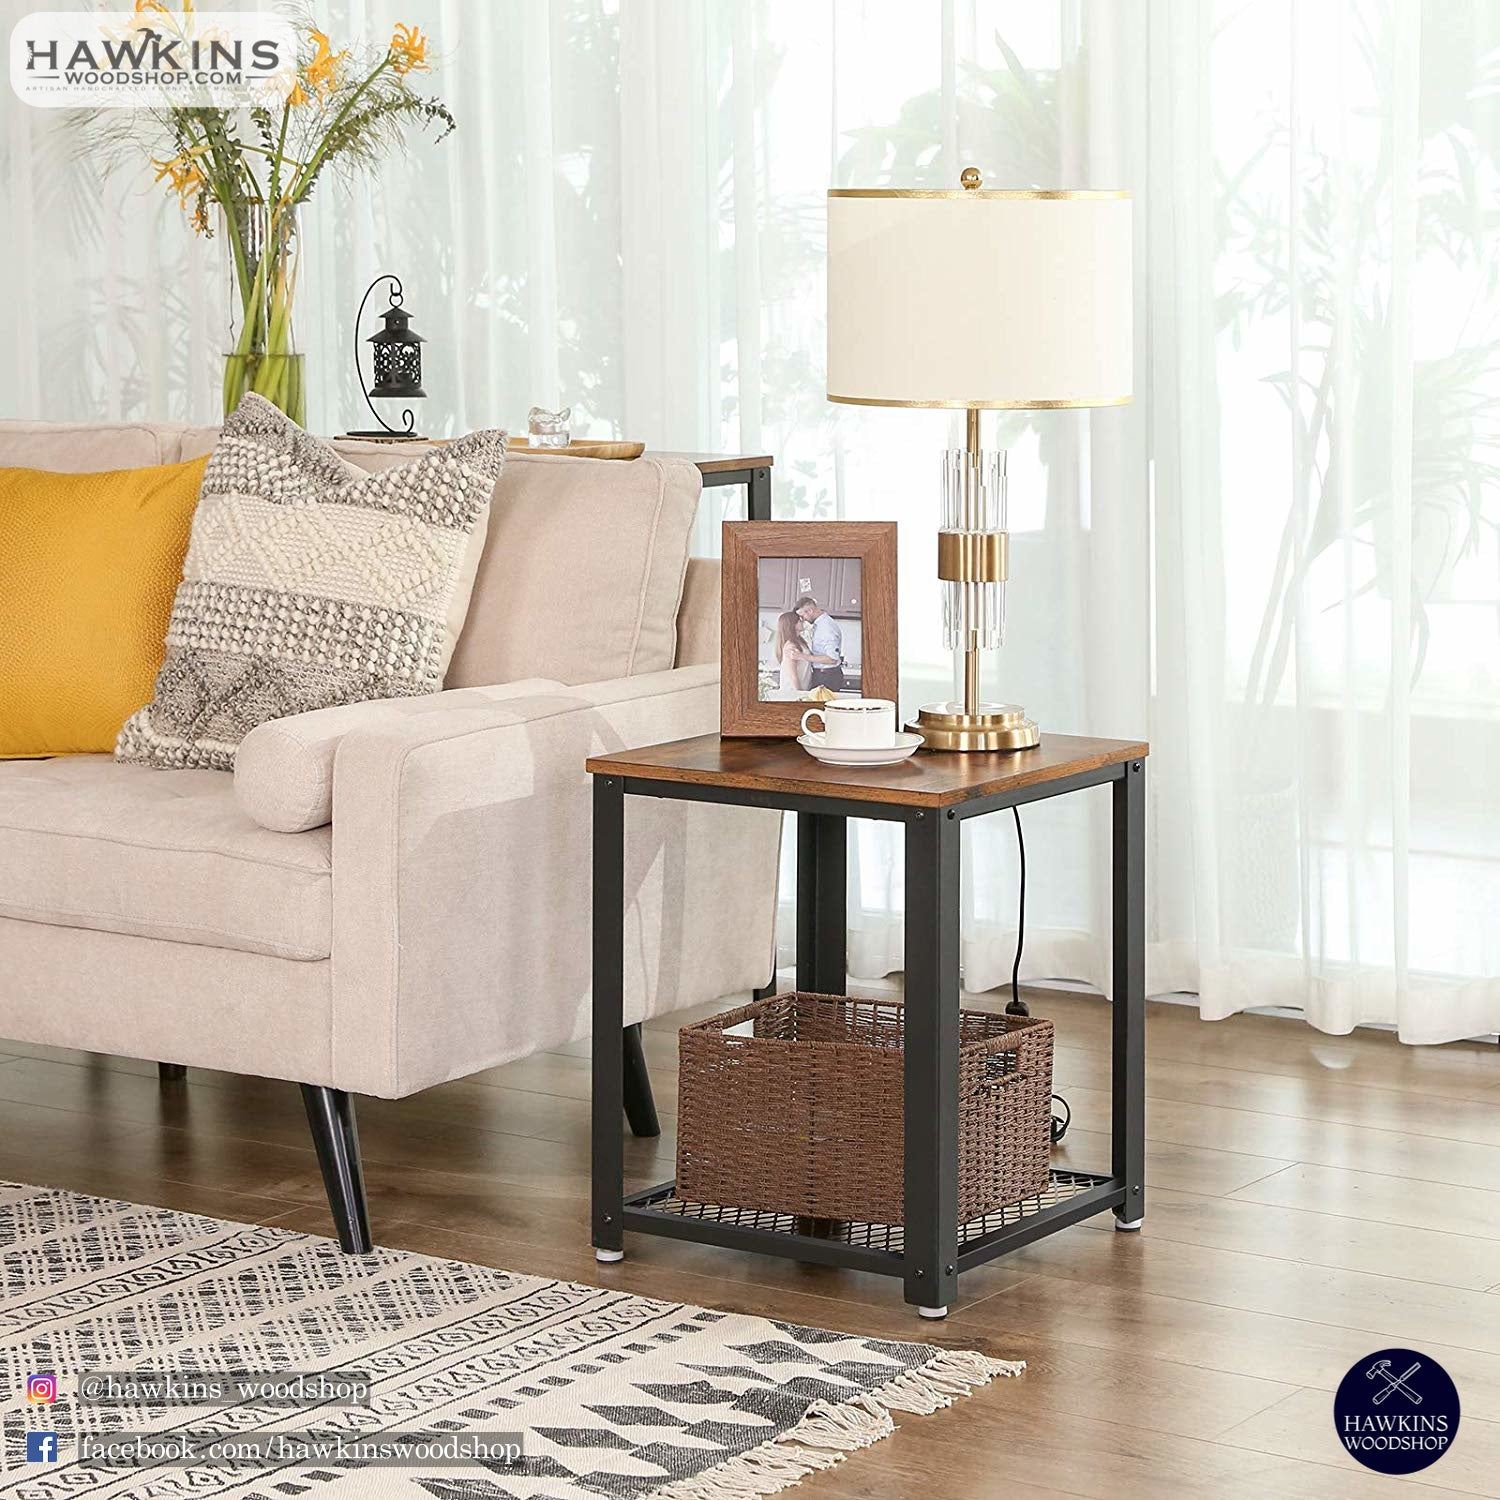 Shop hawkinswoodshop.com for solid wood & metal modern, traditional, contemporary, industrial, custom, rustic, and farmhouse furniture including our Ryan Industrial End Table Nightstand.  Enjoy free nationwide shipping, help with the fight against hunger in the US, and support a family owned and operated business that helps puts food on the table for folks in rural Northern California.